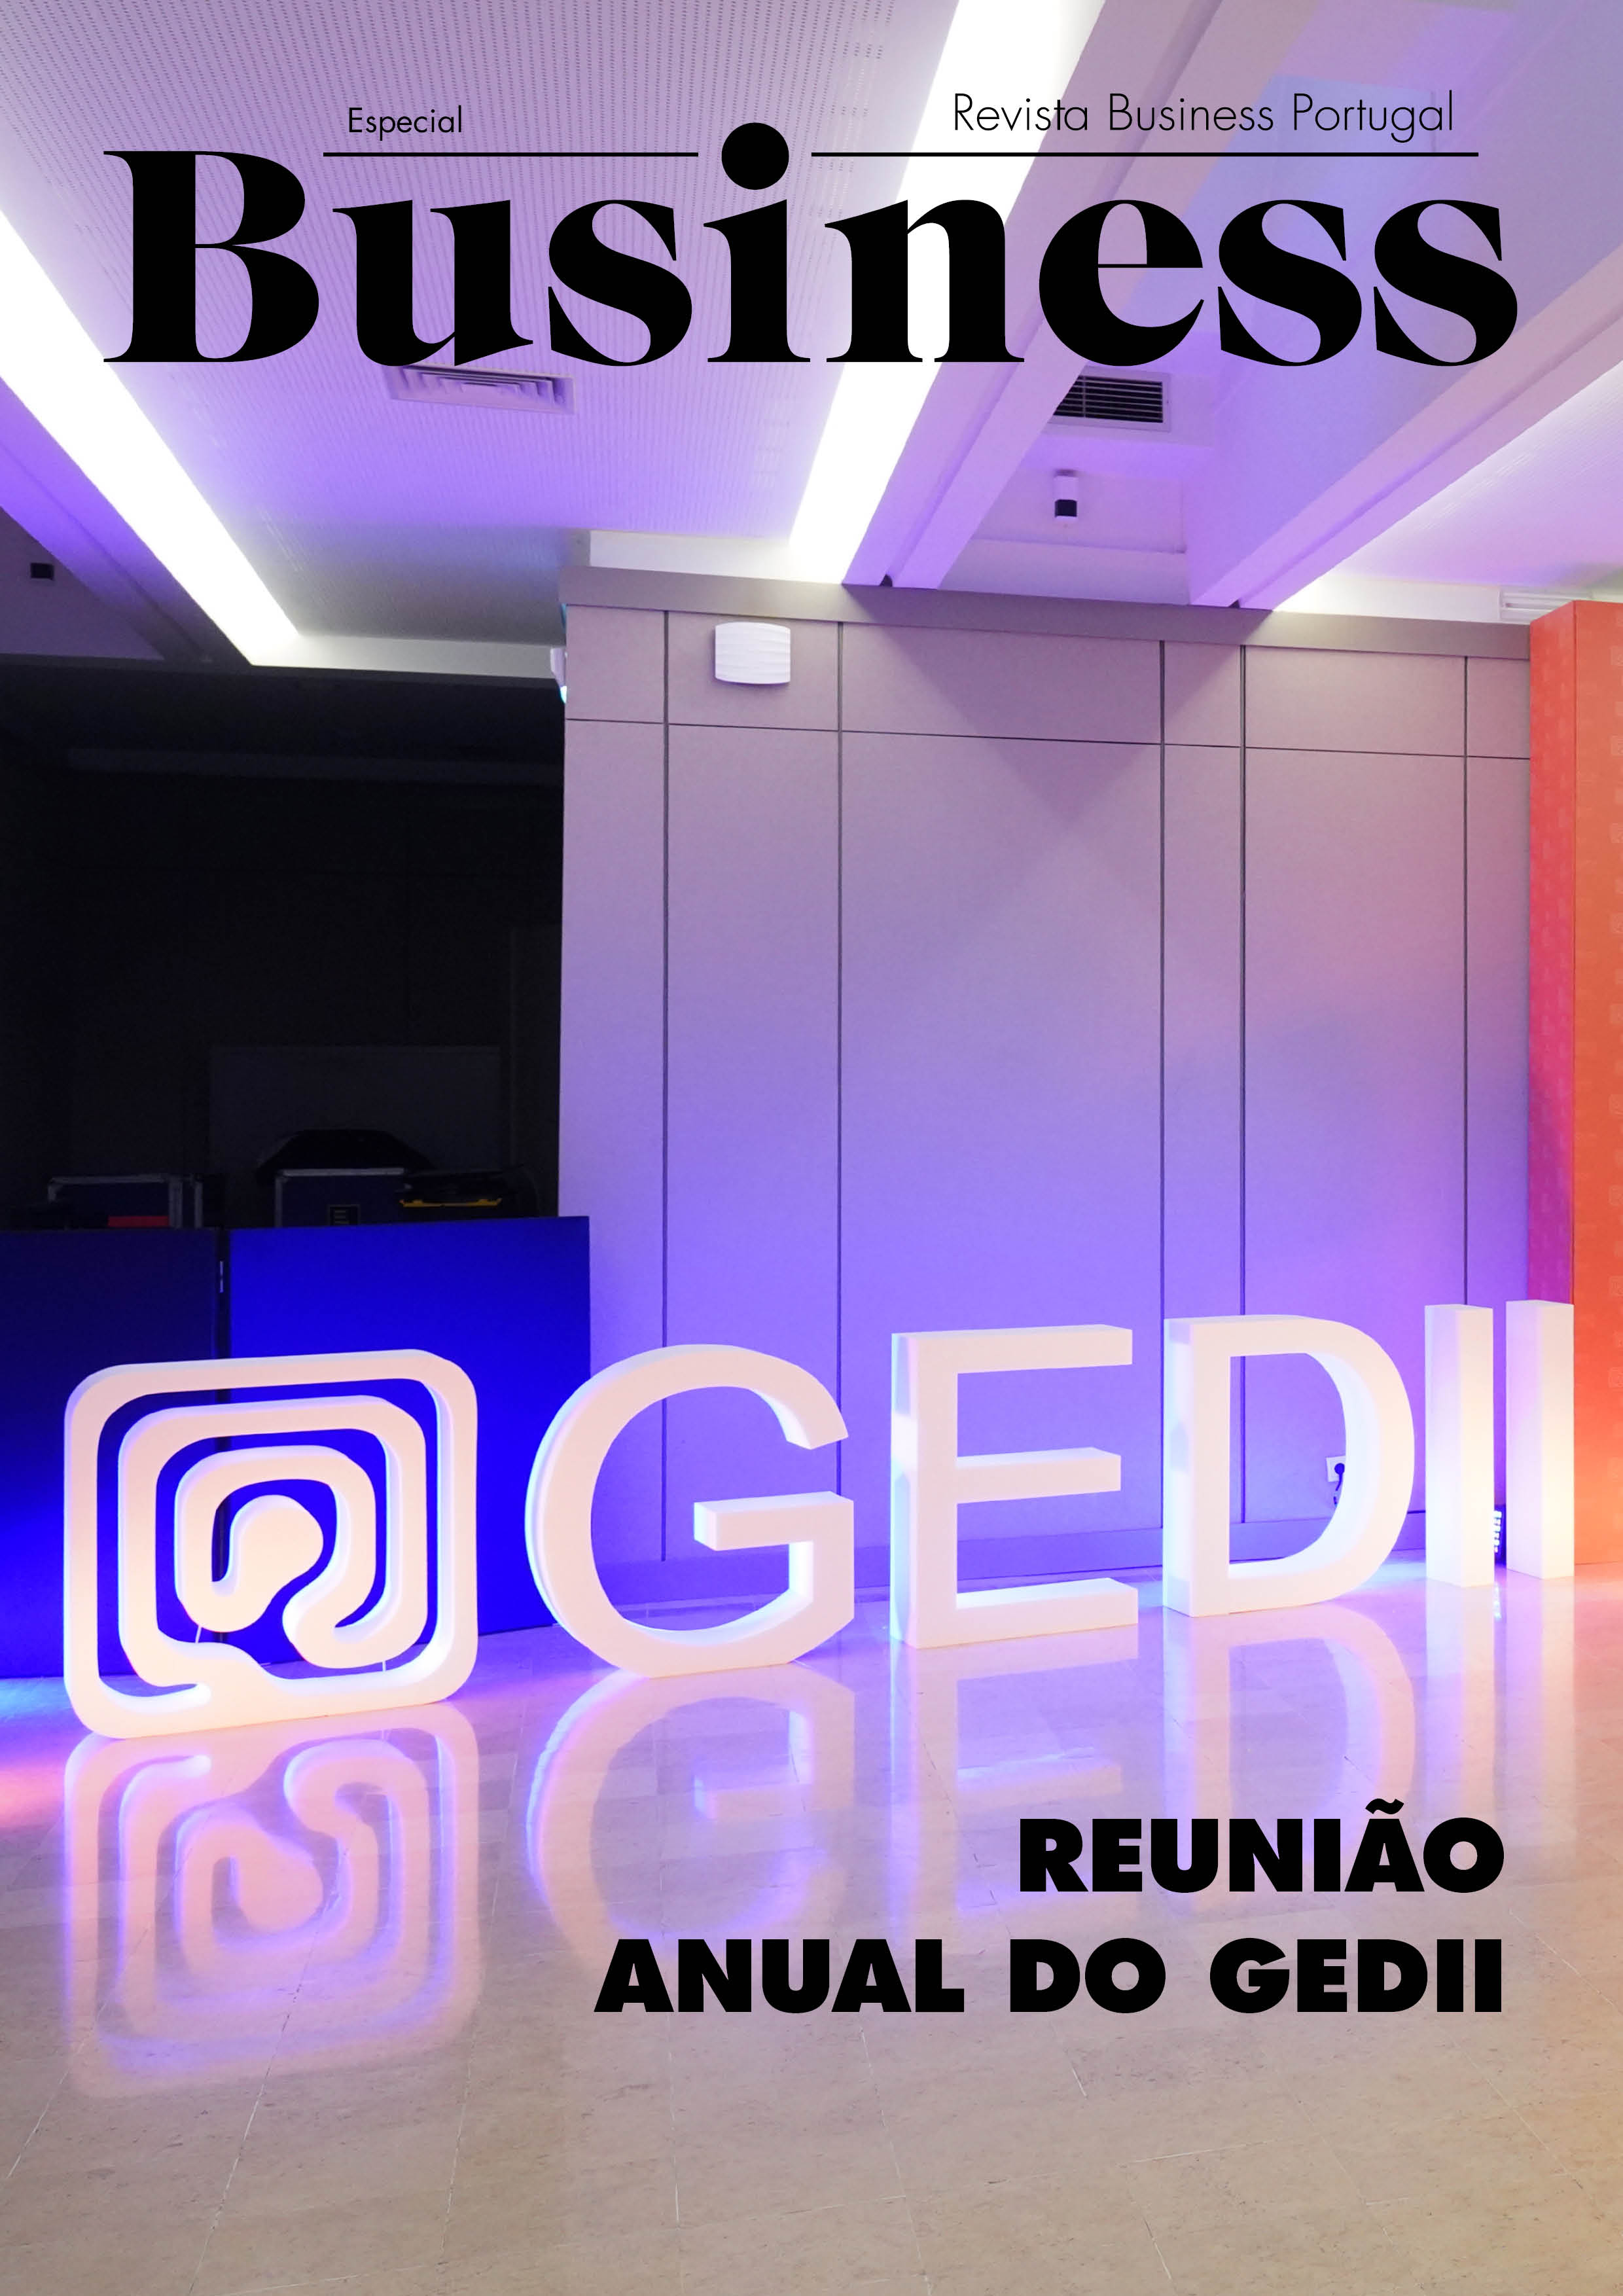 Reunião Anual do Gedii